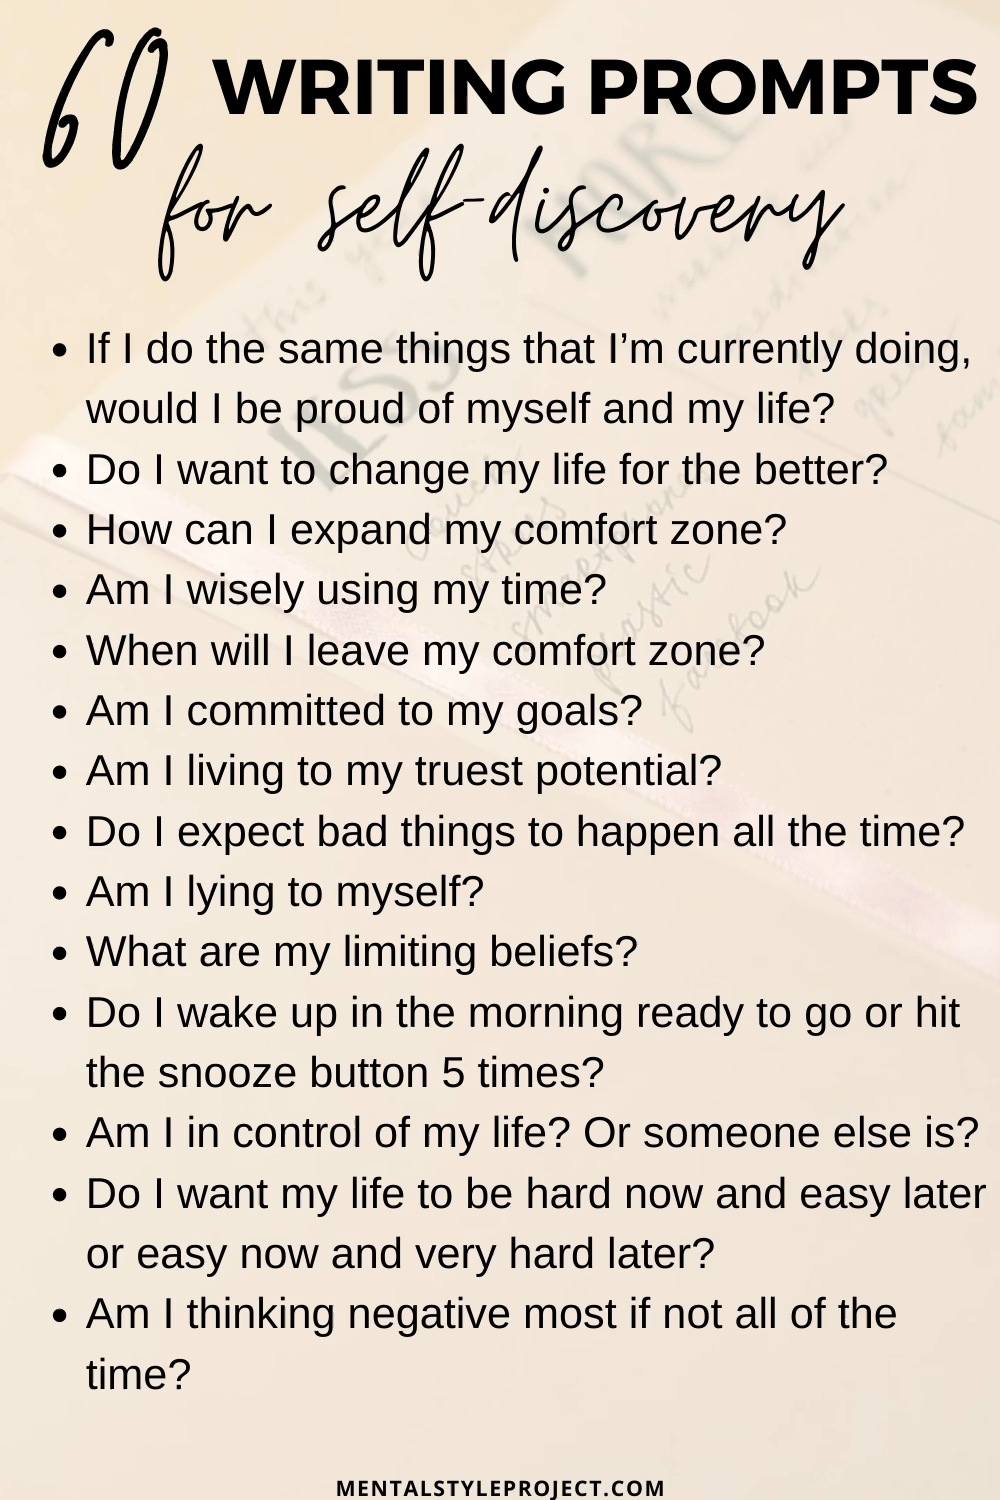 60 Writing Prompts For Self Discovery, Self Improvement, and Self Reflection